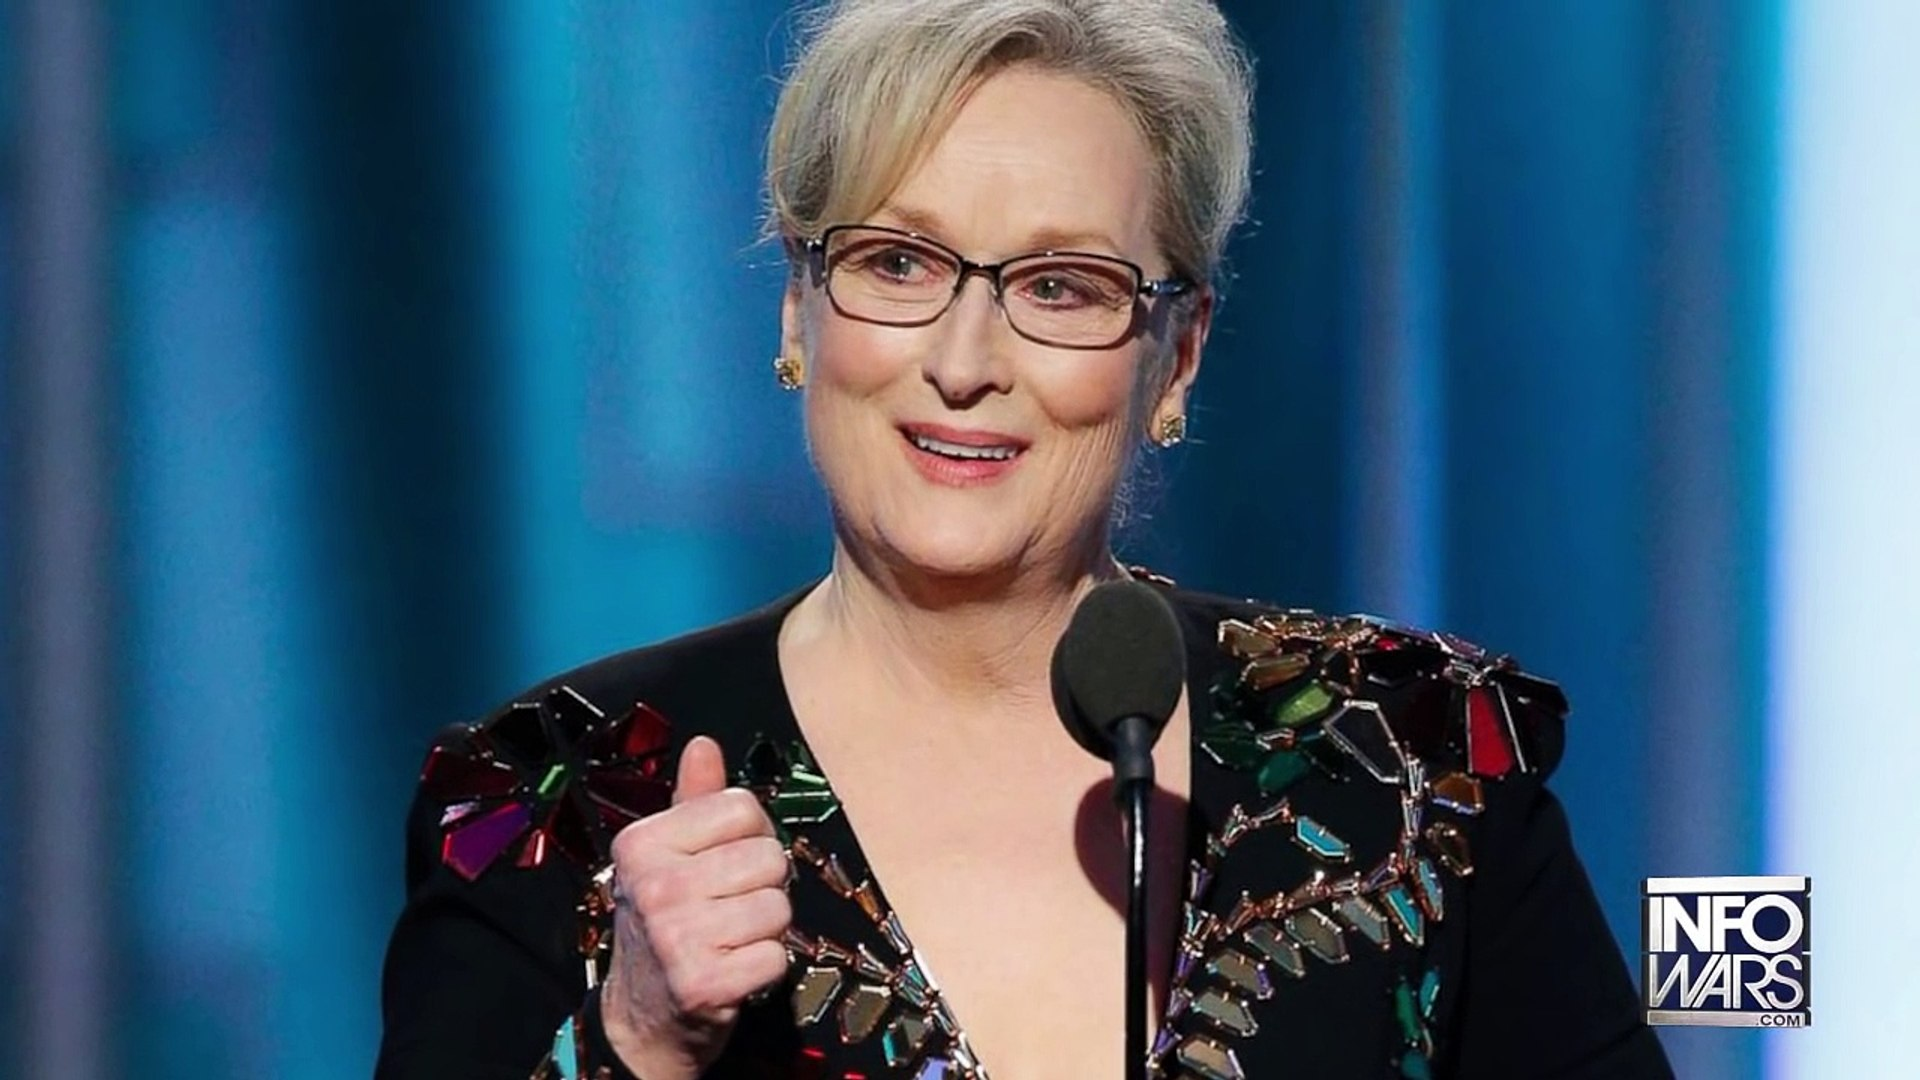 Caught! Meryl Streep Applauds Pizzagate Pedophile